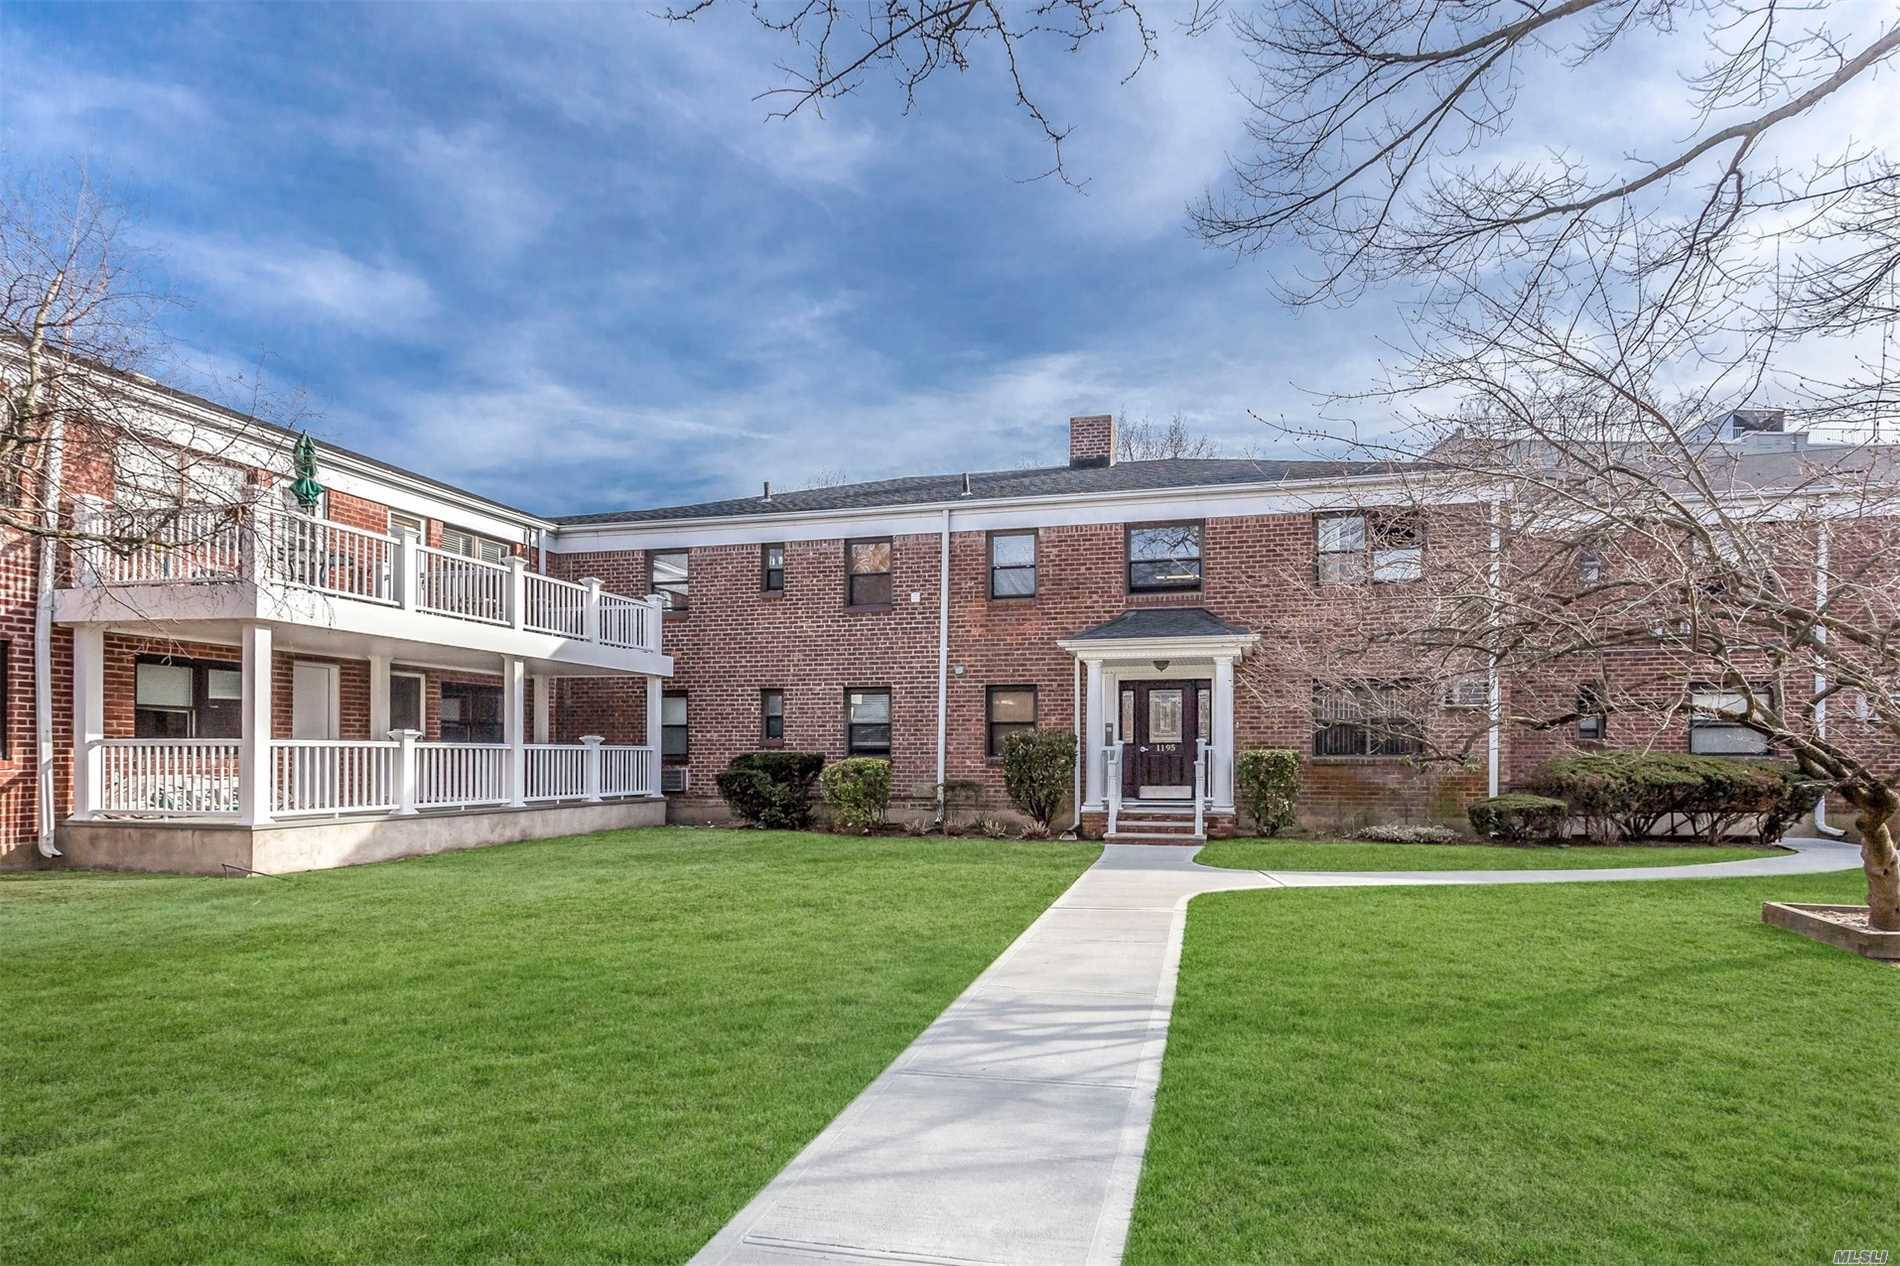 Garden town, hardwood floors, bright 2nd floor apartment with king bedroom, closets open floor plan-laundry in complex, amazing gardens. Taxes with star $647.62